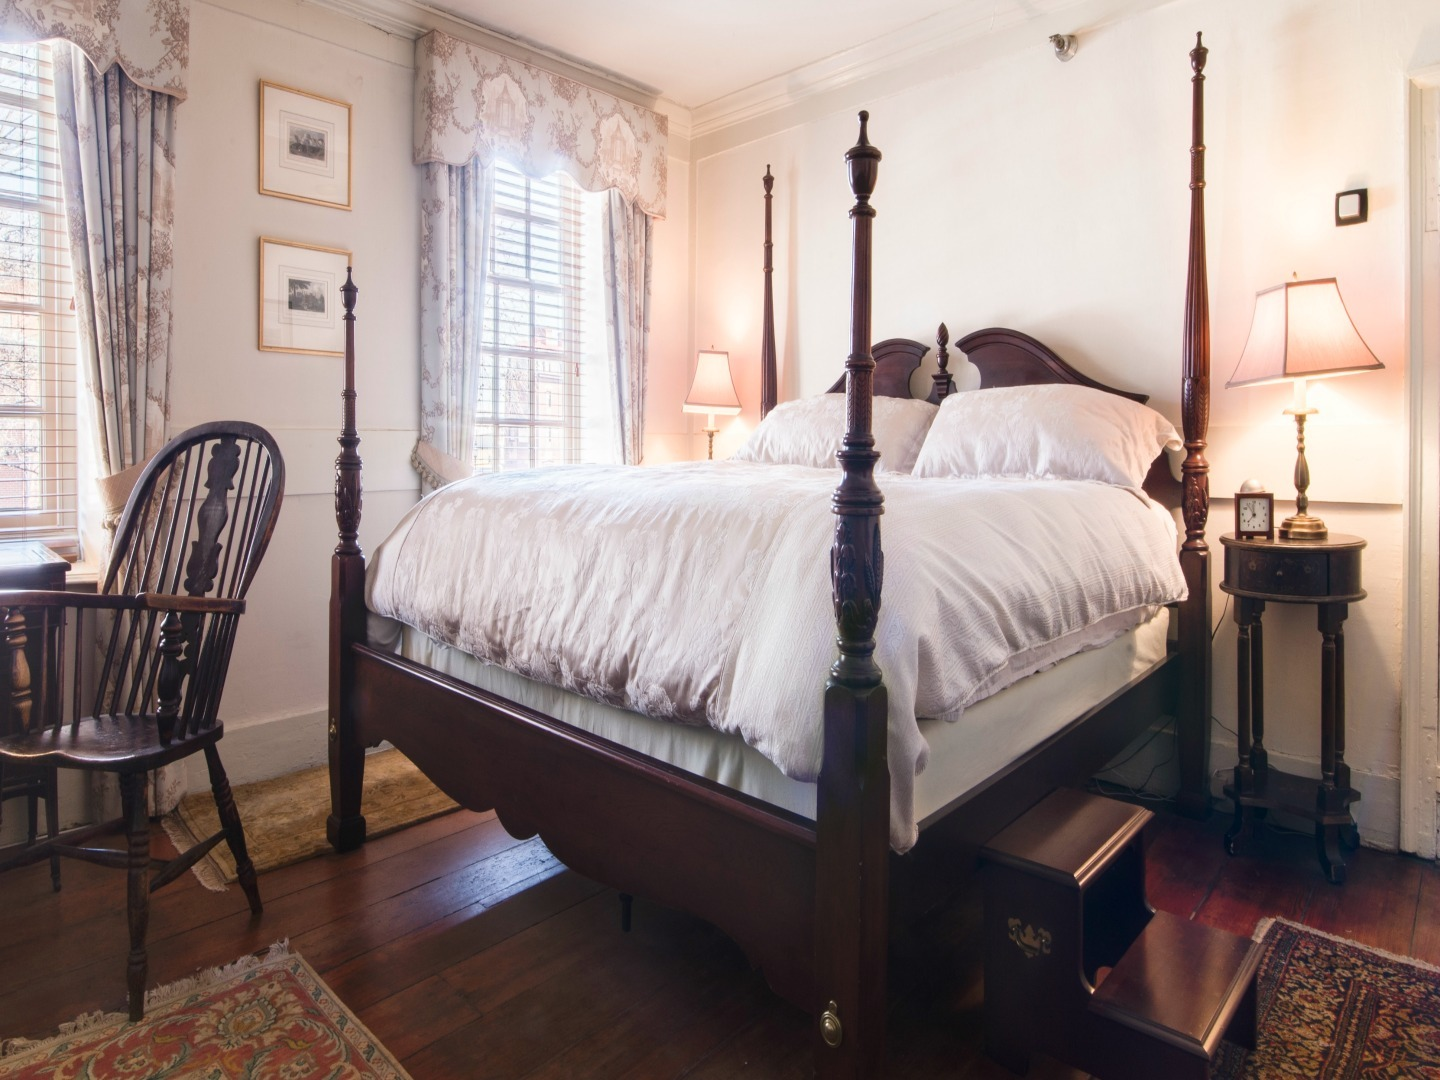 A bedroom with a bed and a chair in a room at Reynolds Tavern.